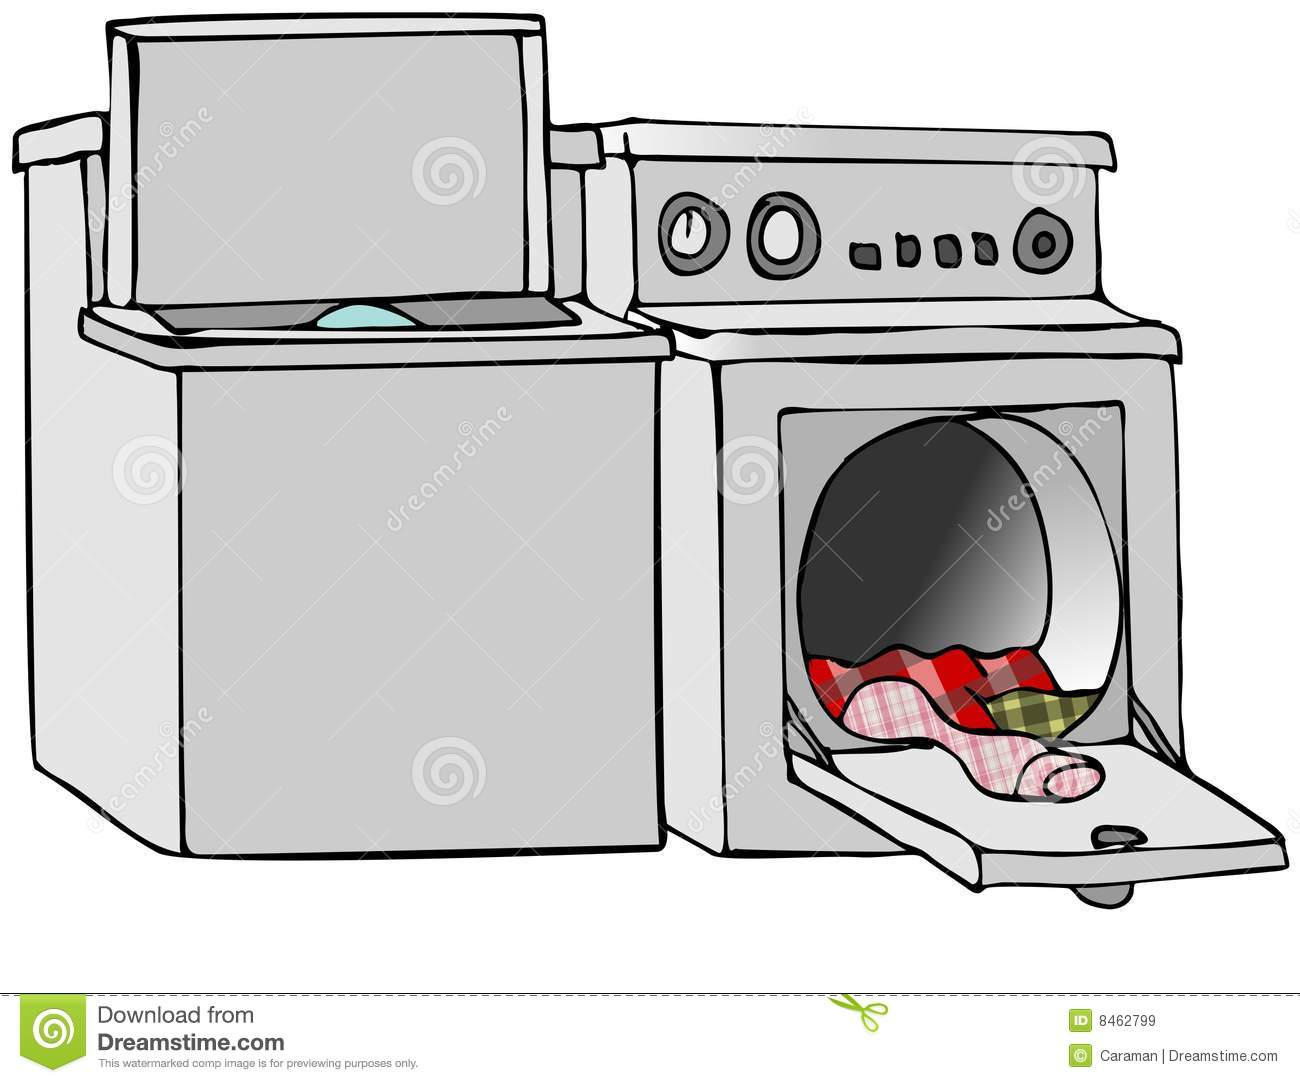 Washing Machine And Dryer Clip Art Washer and dryer